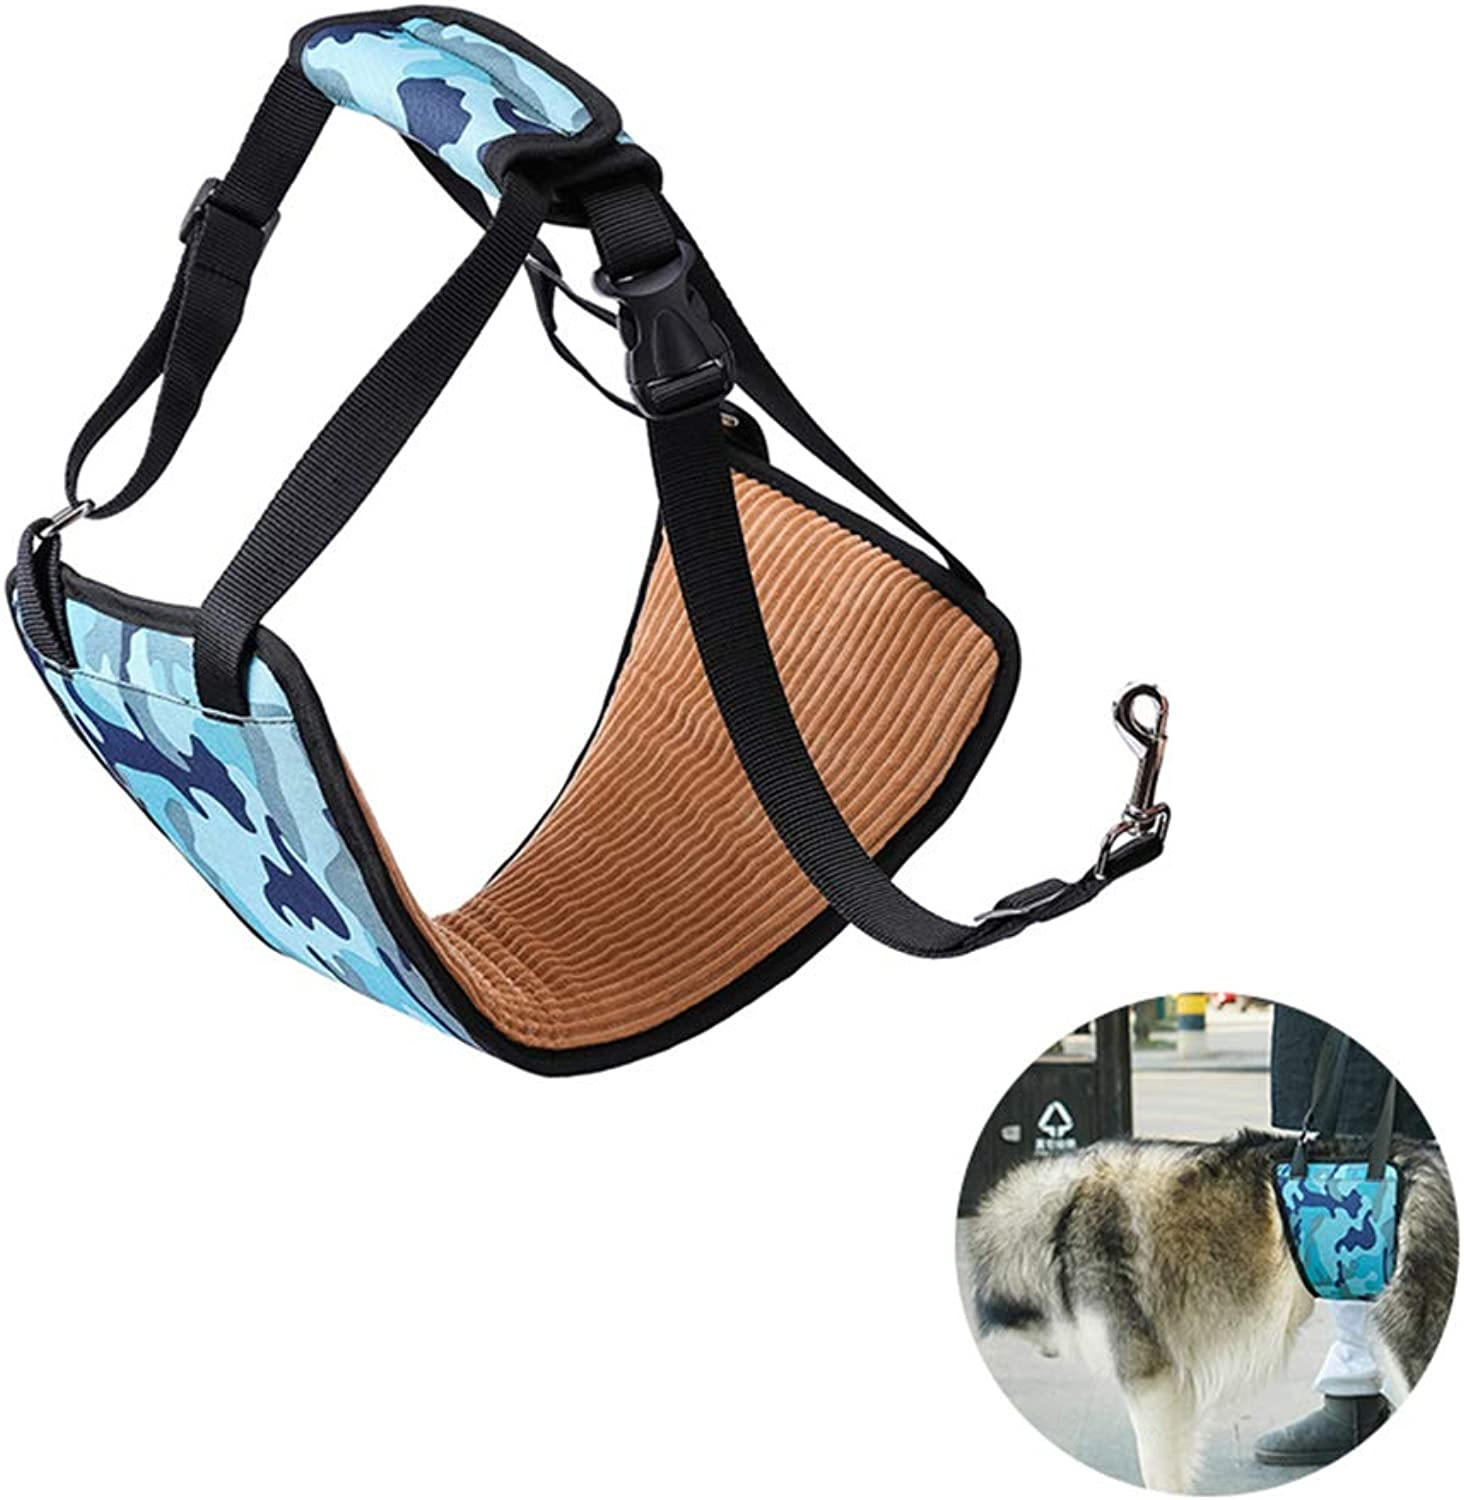 Adjustable Dog Lifting Harness,Pet Dog Lift Support Rehabilitation Harness Canine Aid Assist Sling for Old Disable Injured Dogs(bluee Camouflage)